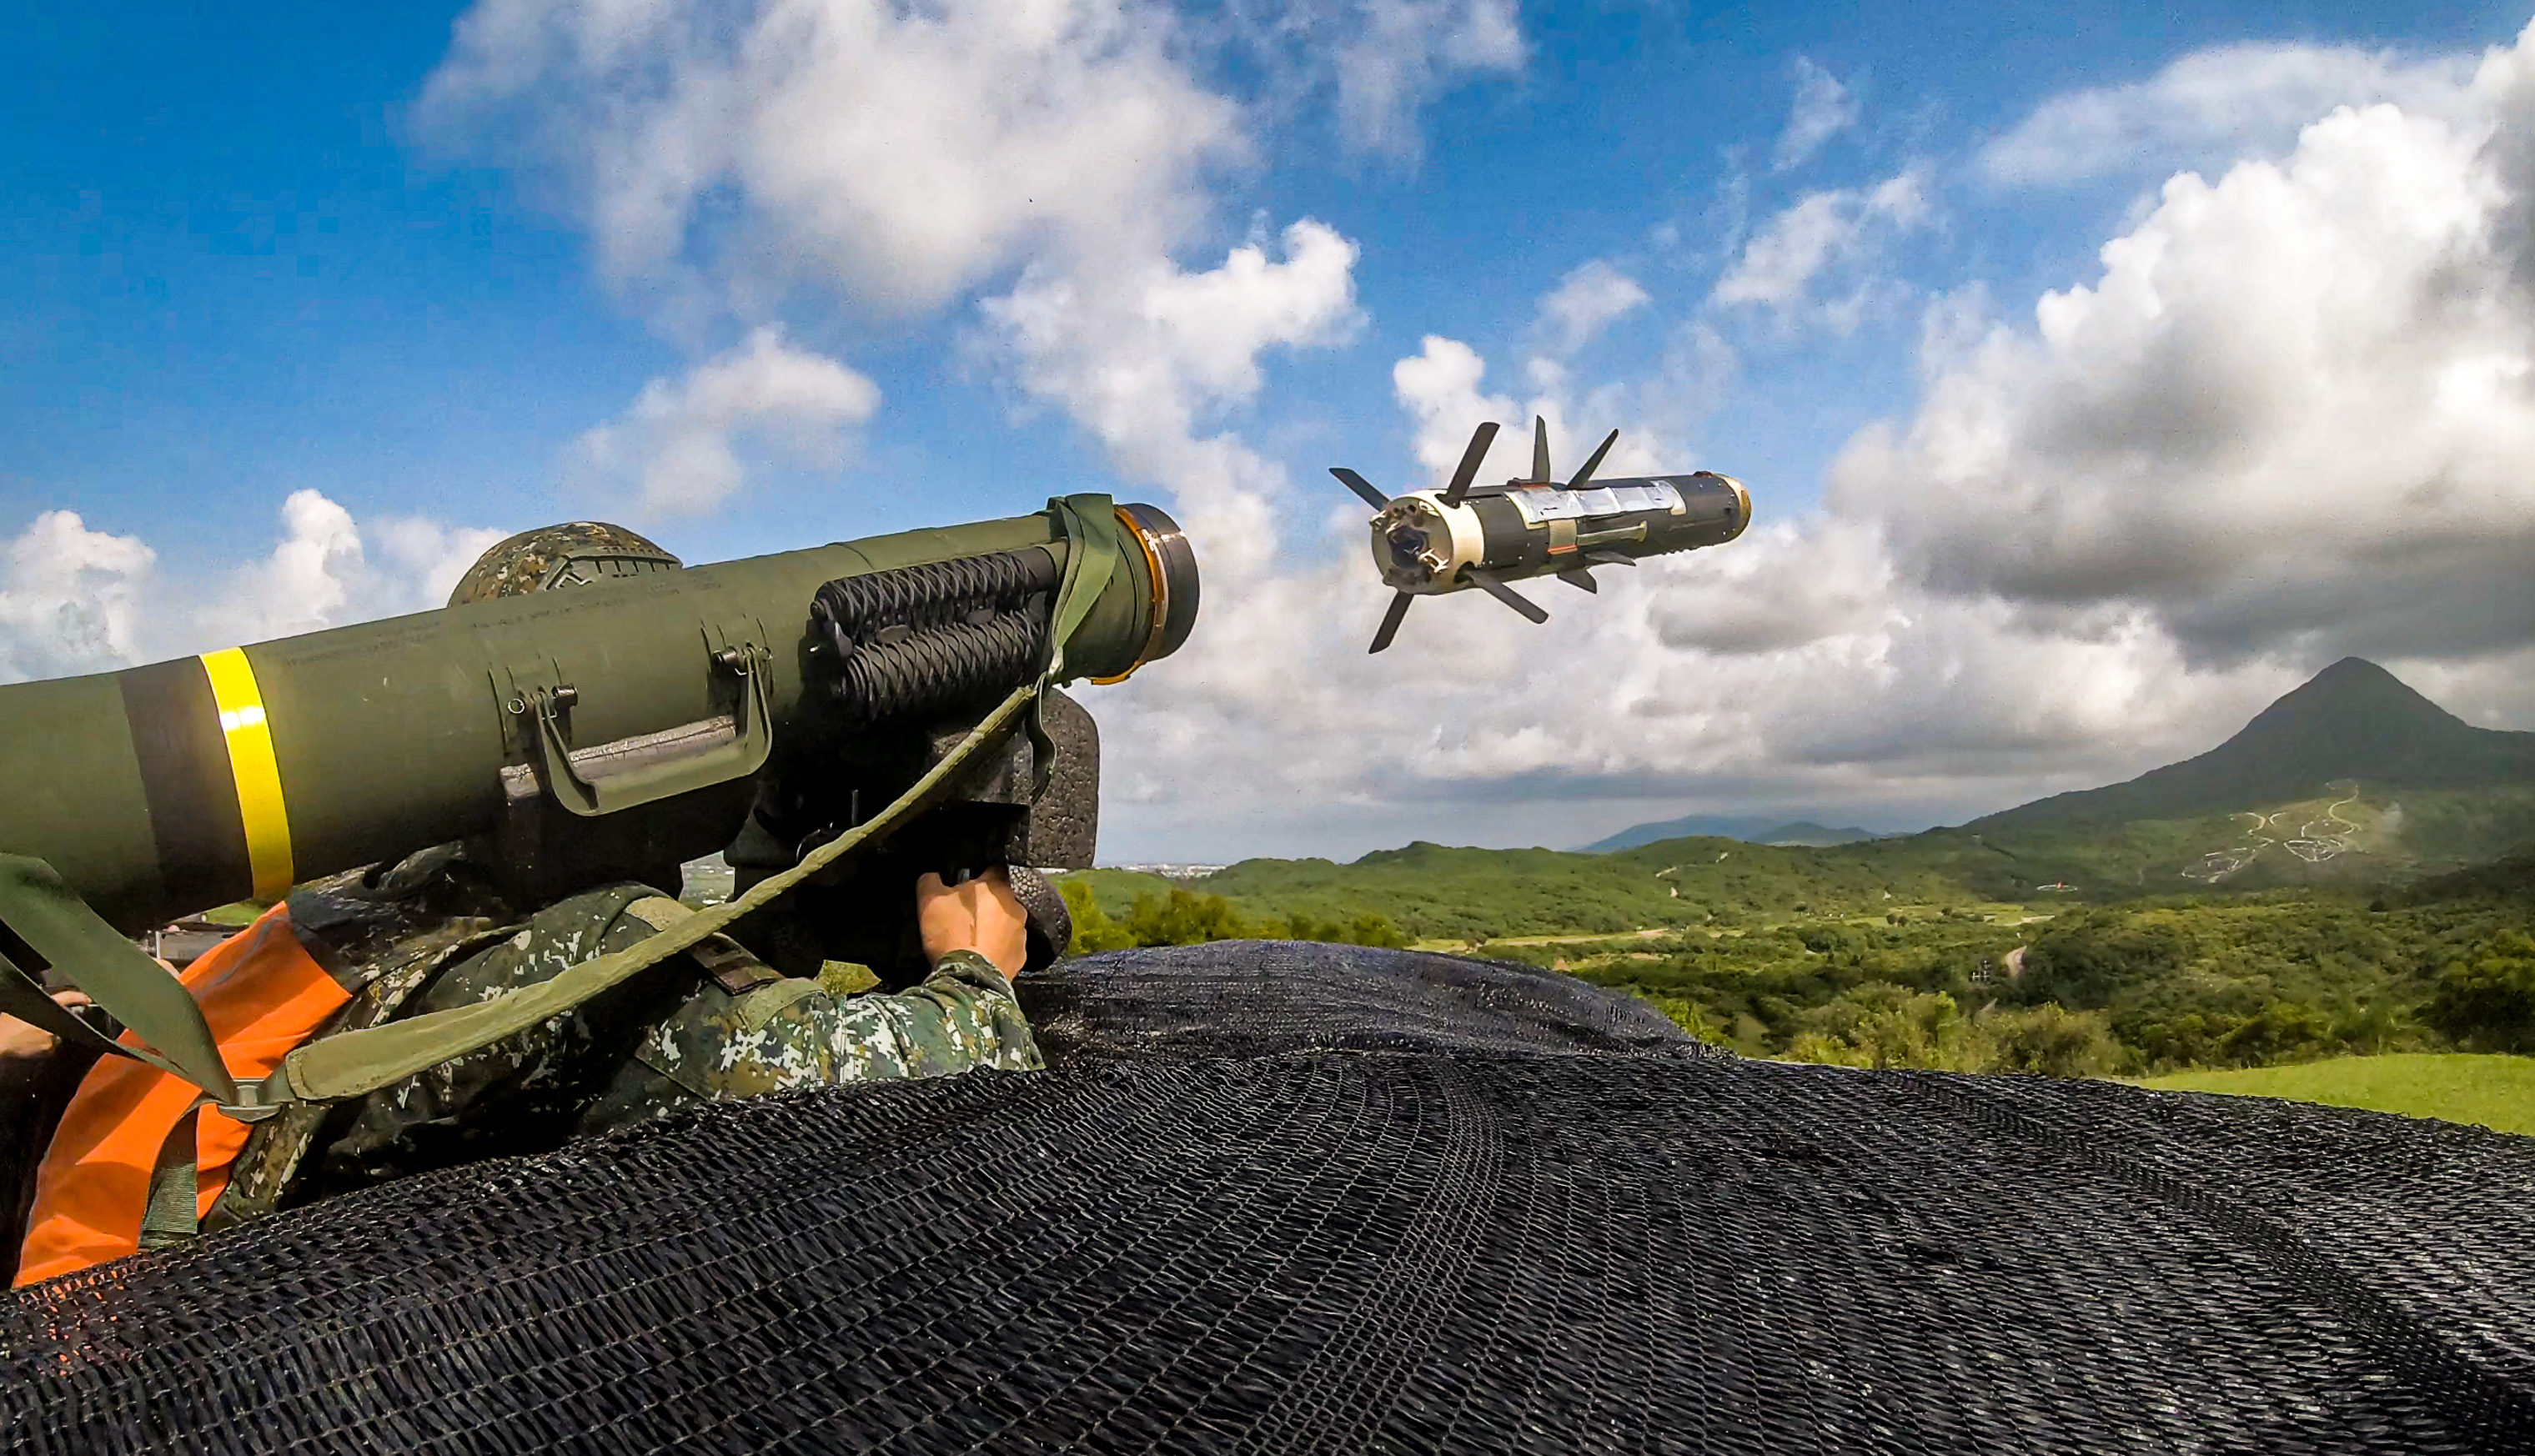 Joint Fighting Live-fire Validation Demonstrates Units' Joint Capability